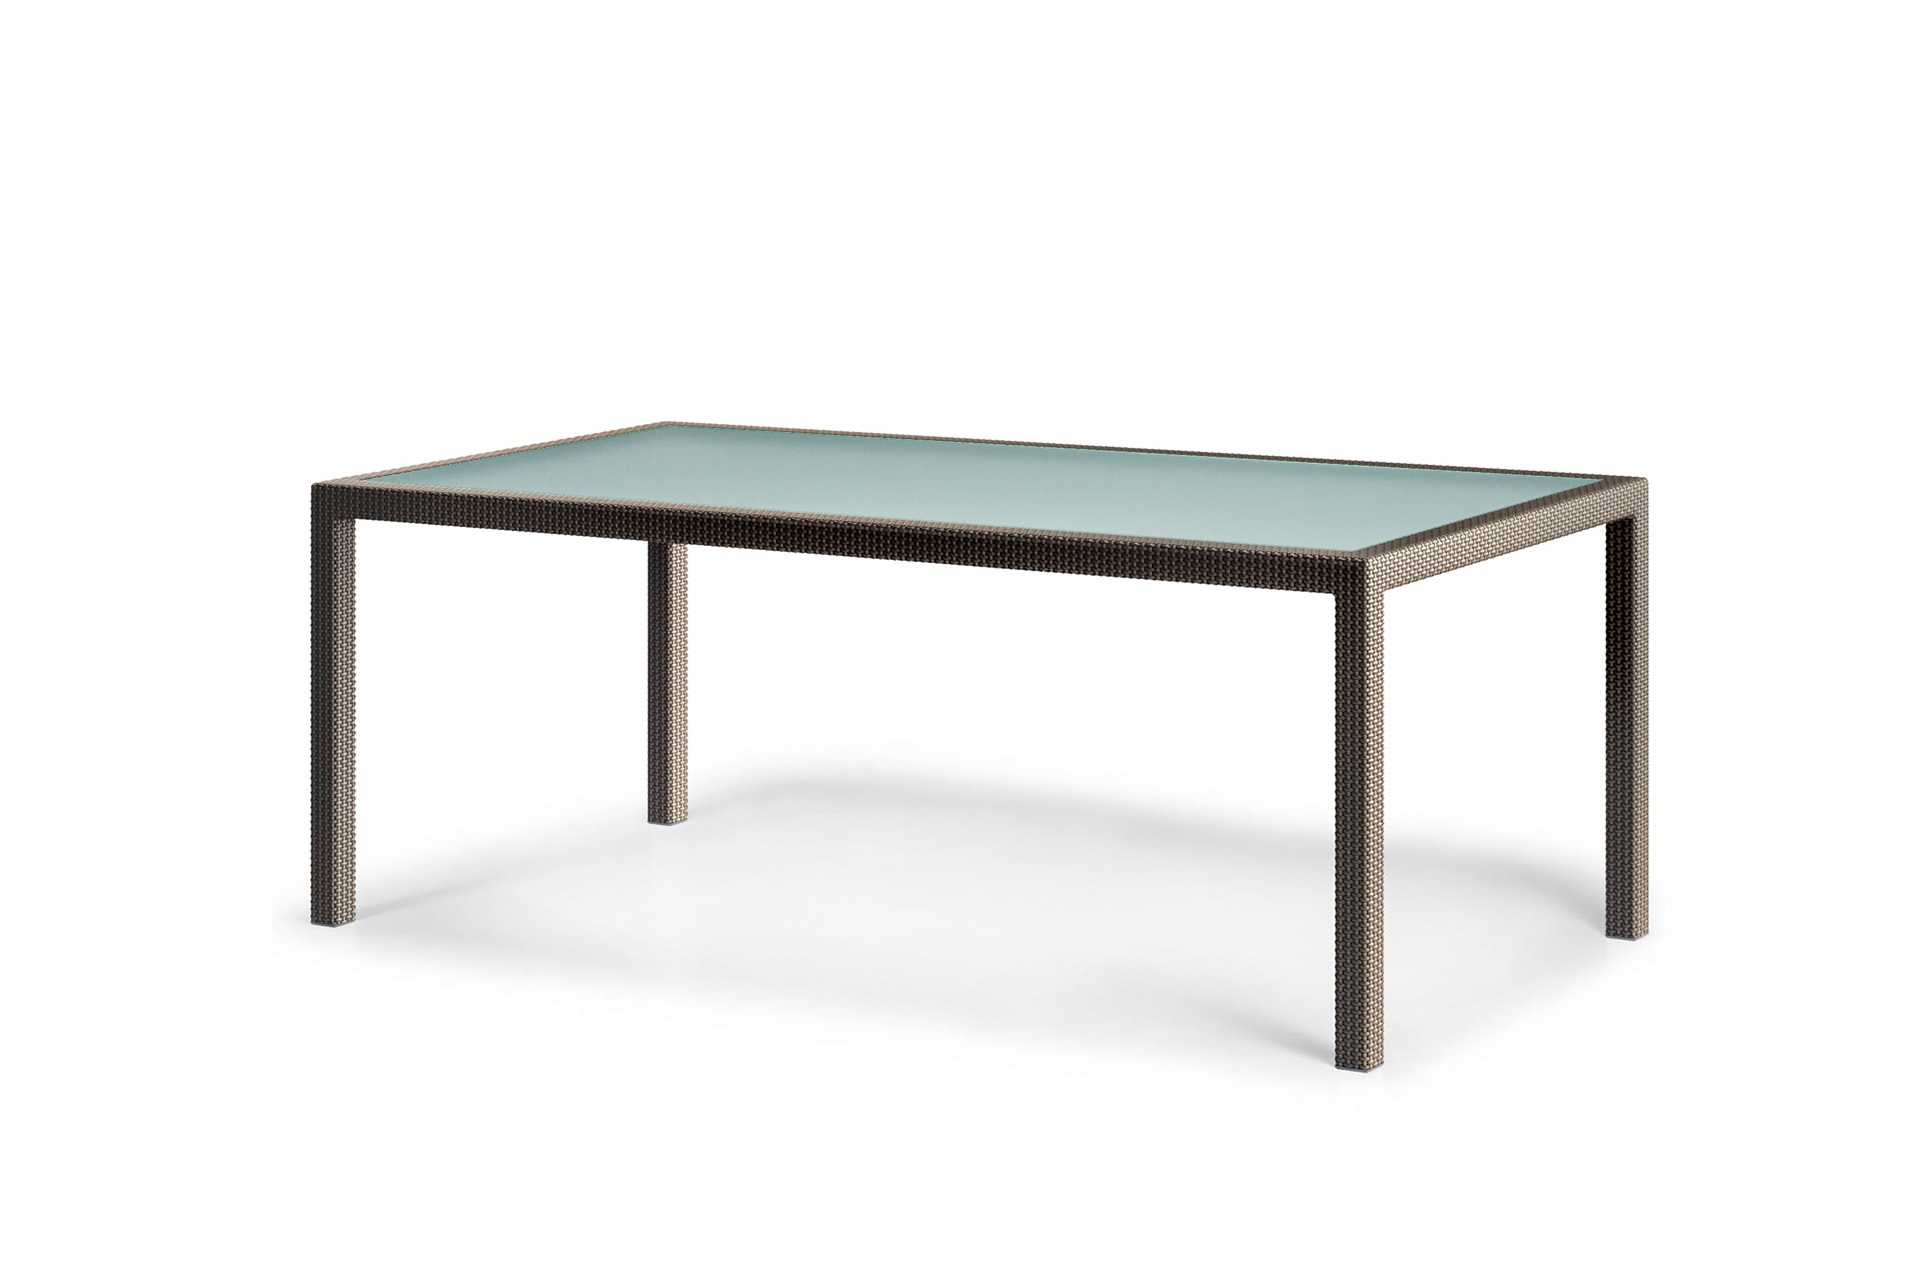 Perfect Dining Table. Lounge Chair